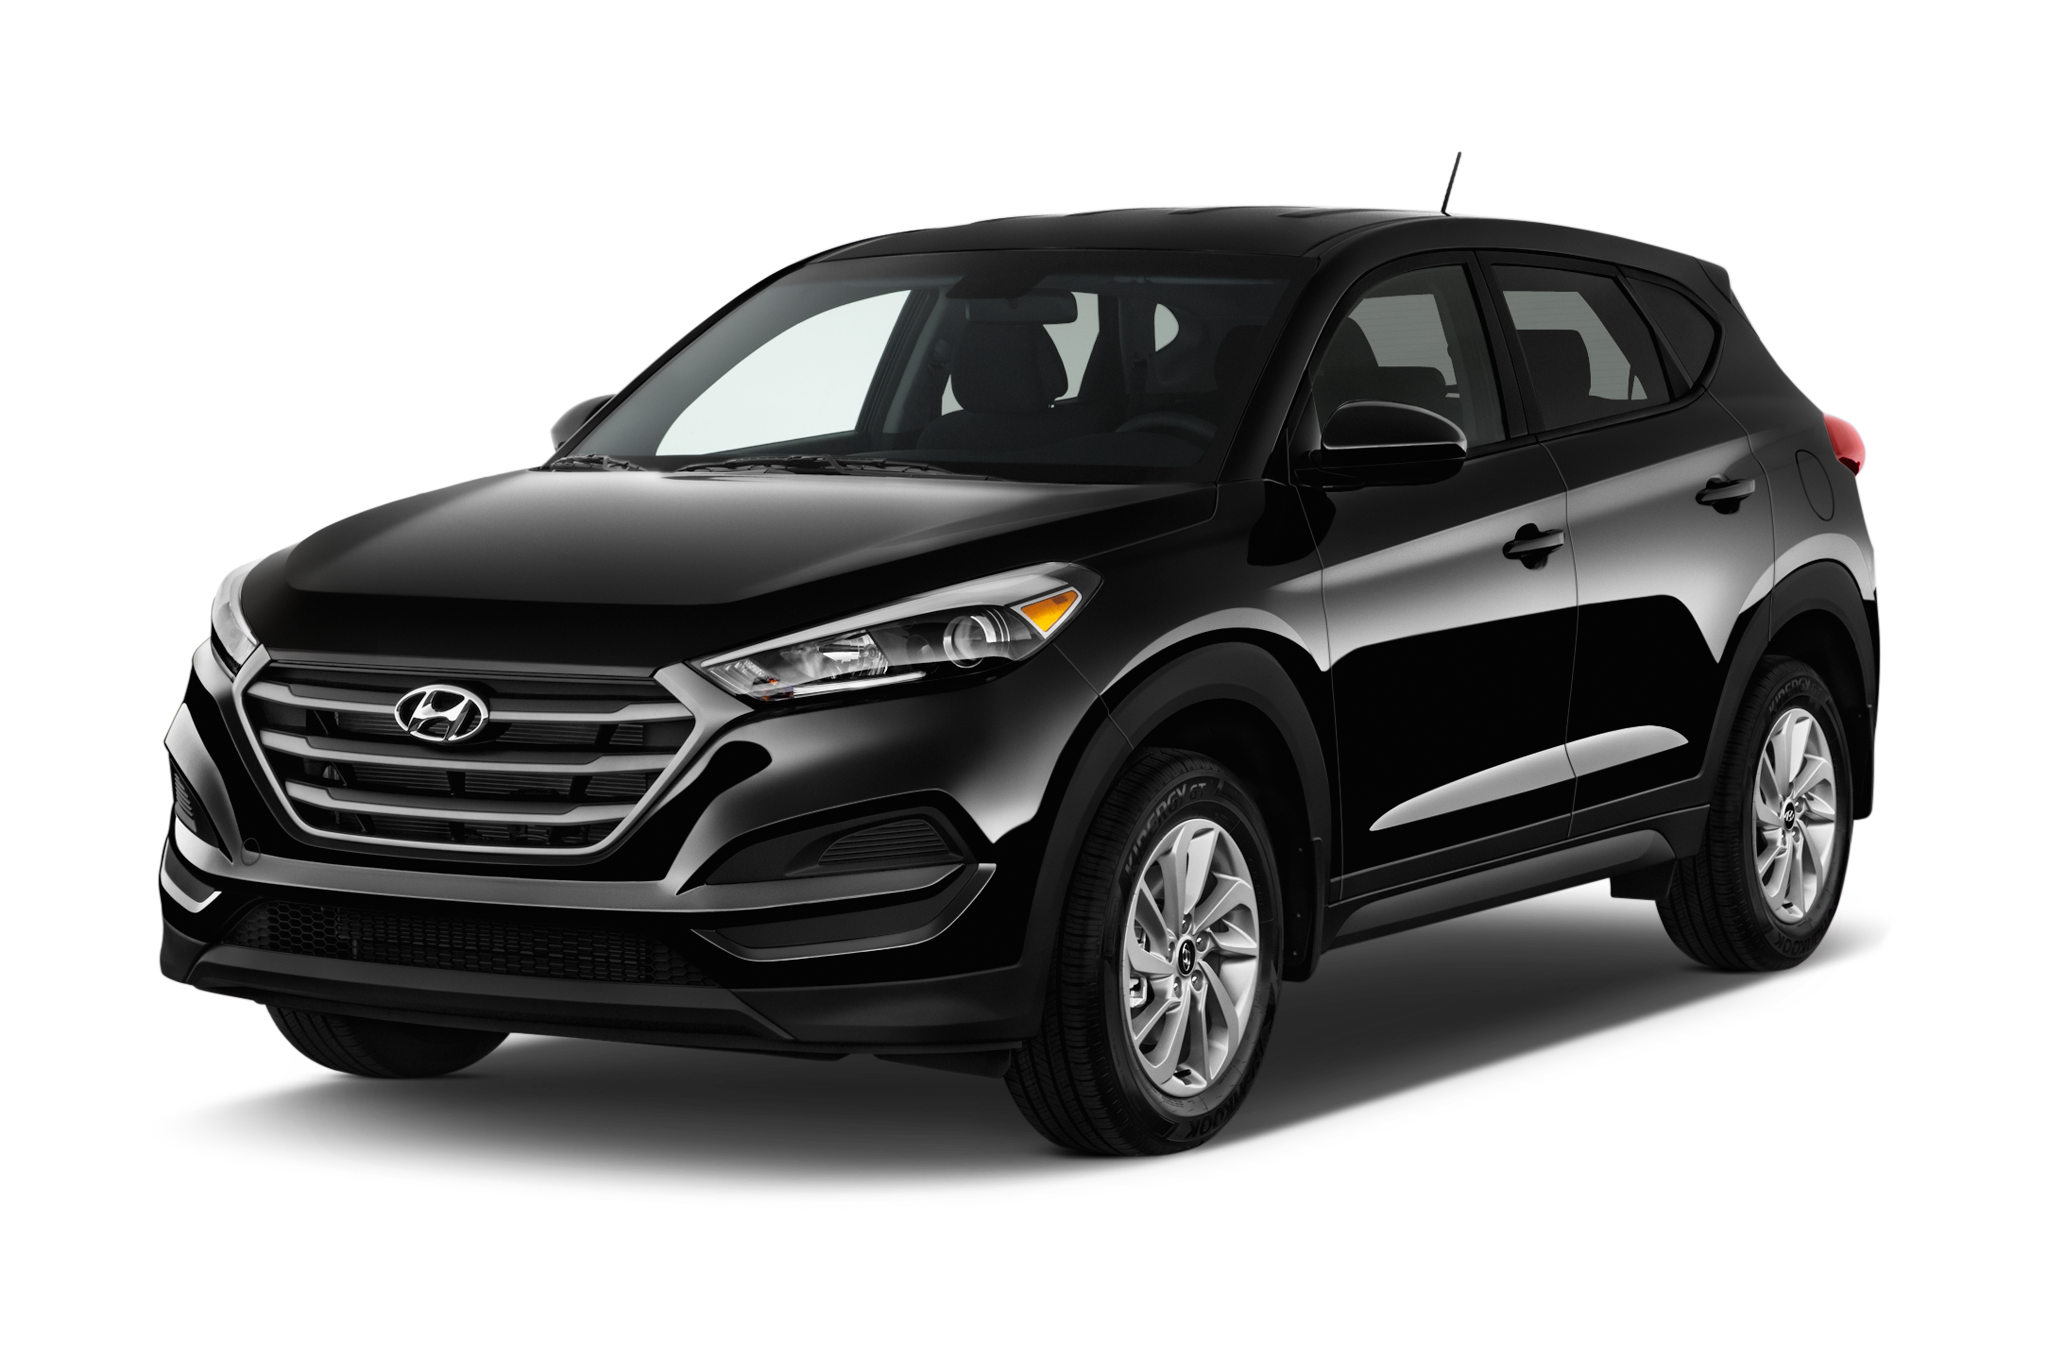 2018 Hyundai Tucson SEL AWD Specs And Features